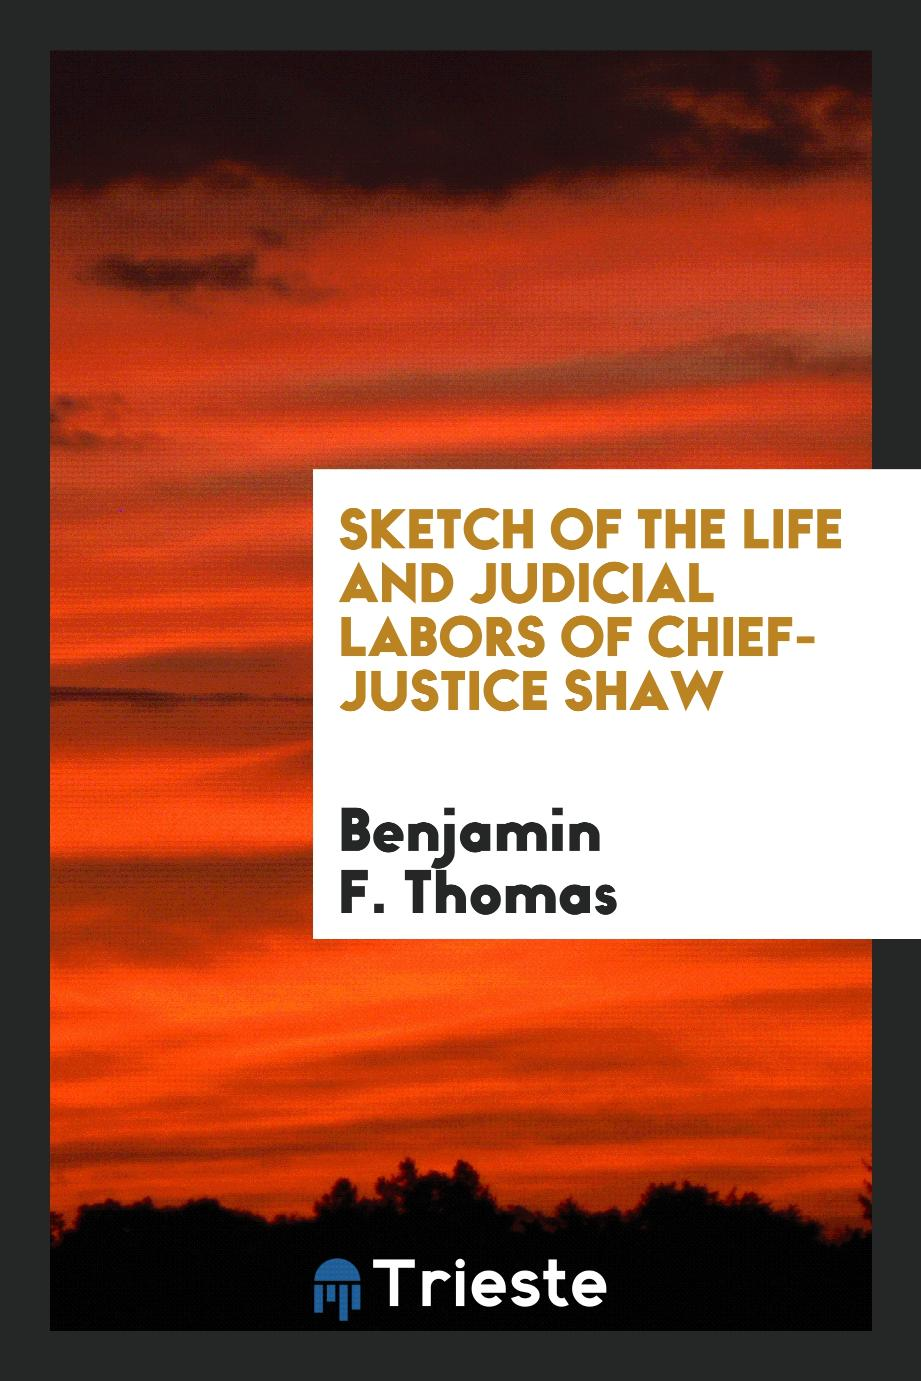 Sketch of the Life and Judicial Labors of Chief-Justice Shaw